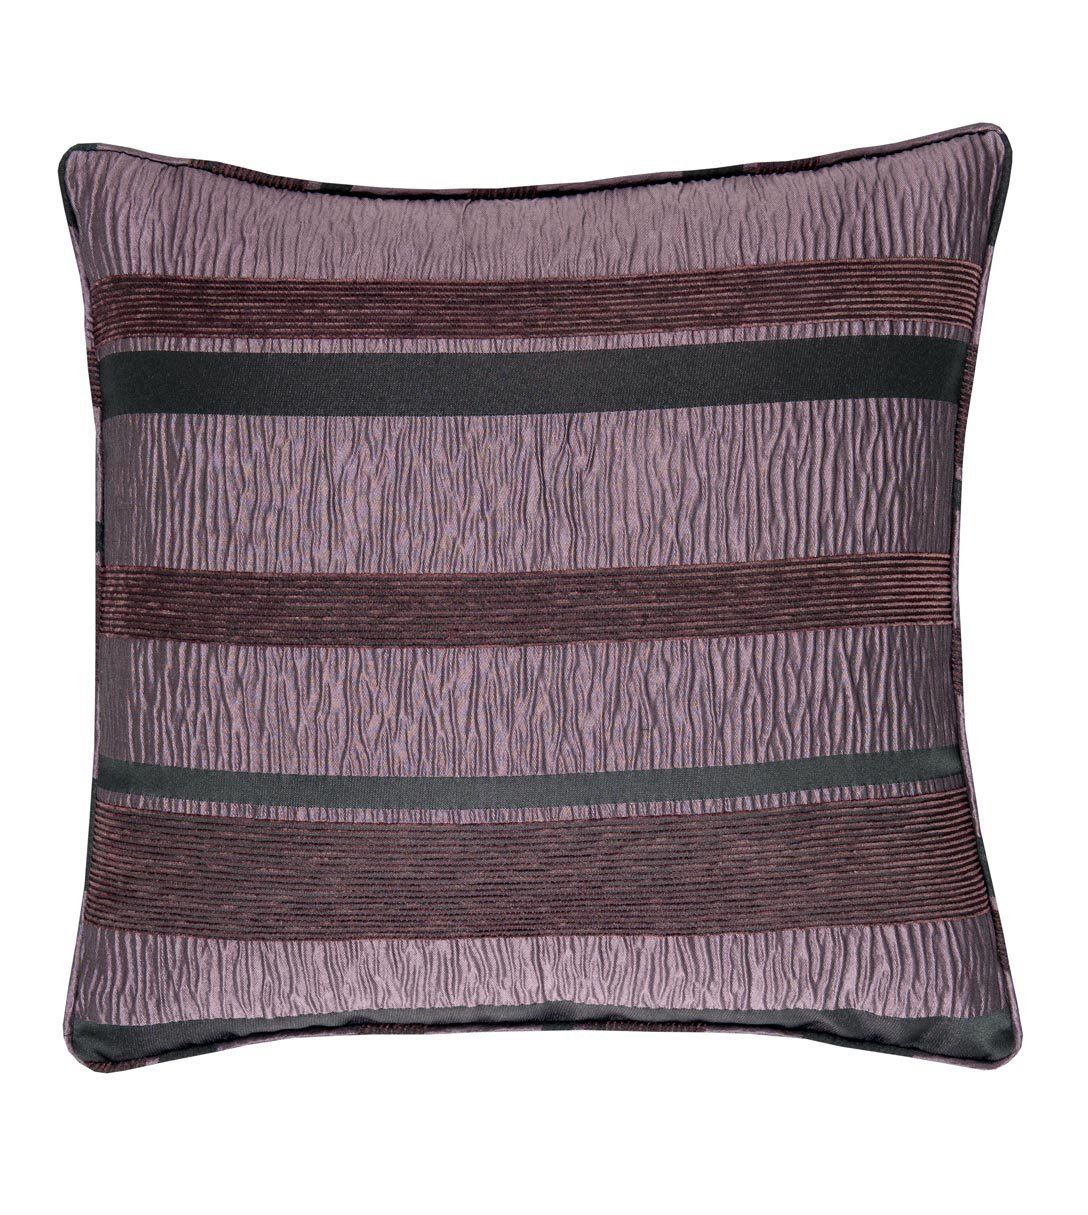 Accessorise Your Home with Colourful and Comfortable Cushions. Cushions are an essential part of your life that often go unnoticed. They provide comfort and support and add a splash of colour to any room. You can use these stylish accessories to add a decorative touch .